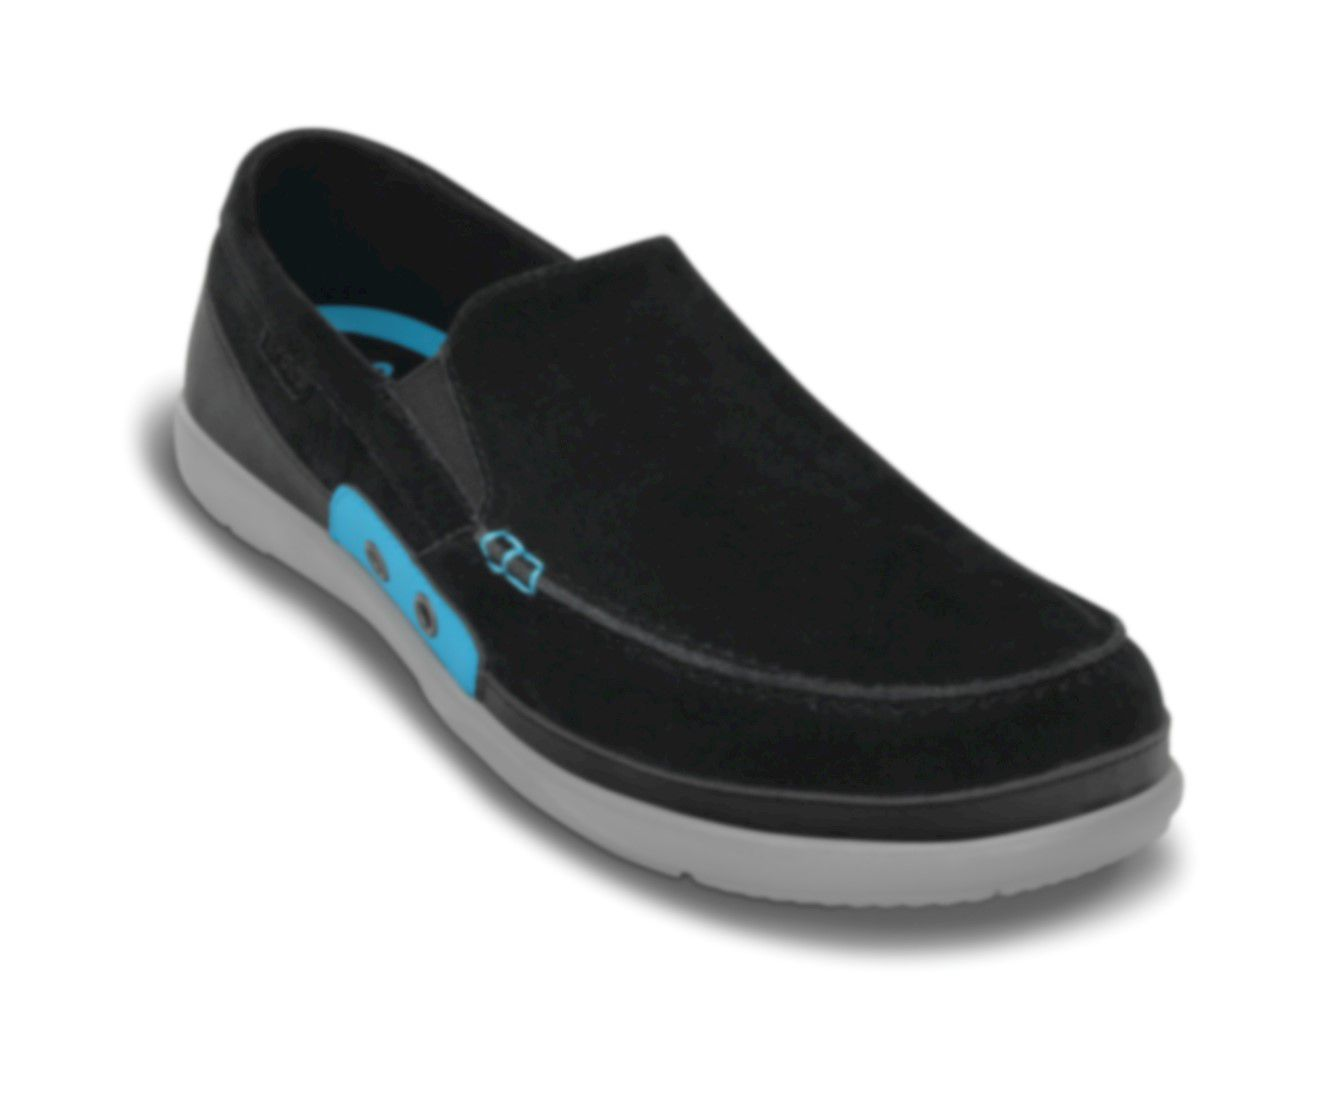 Sapato Crocs Masculino Walu Accent Suede Loafer Black